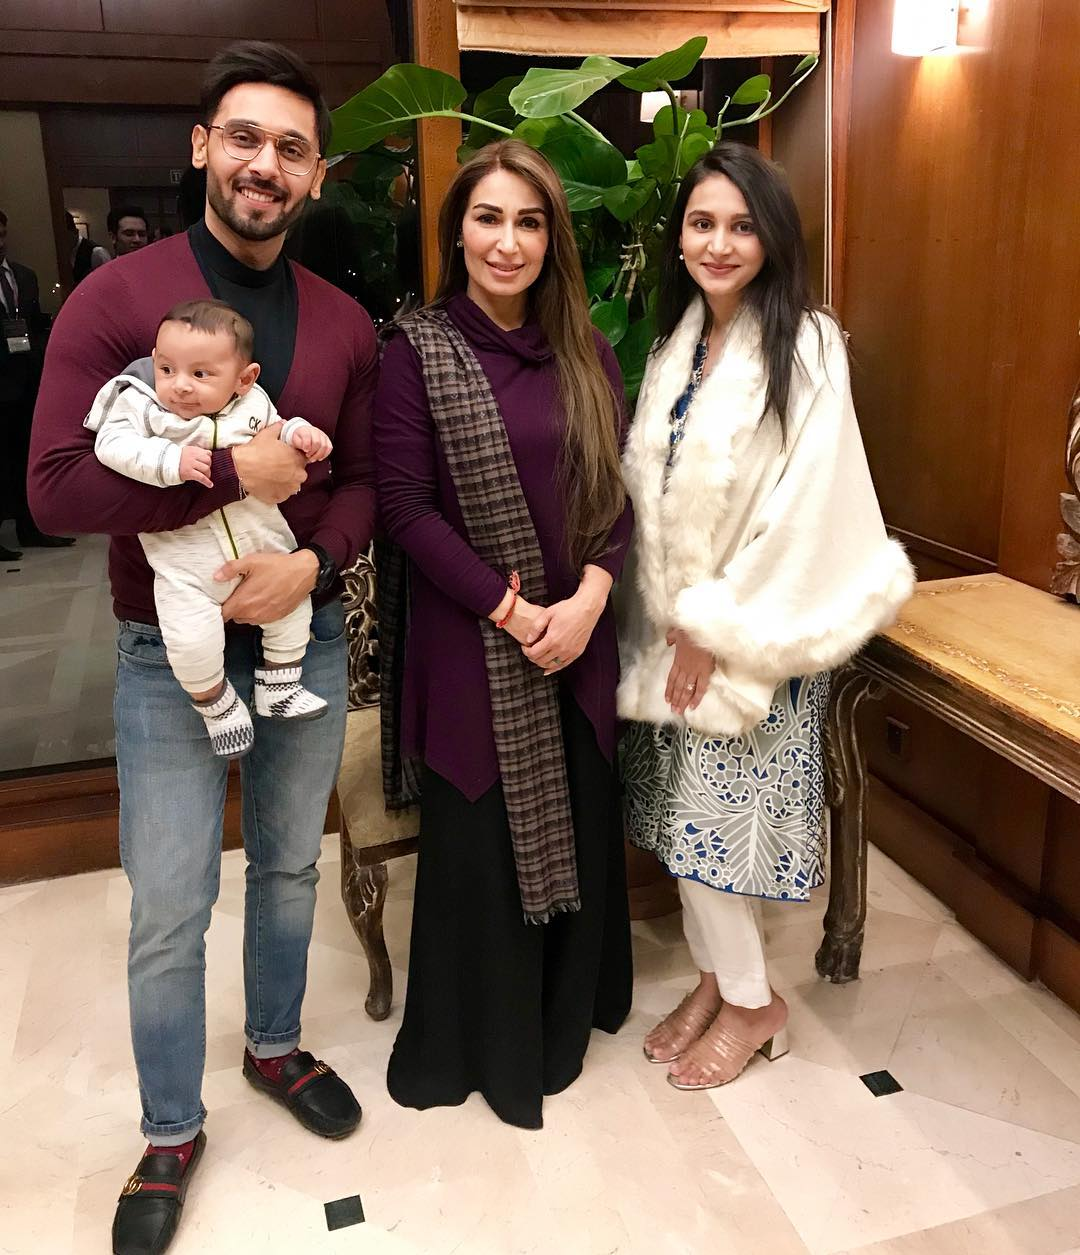 Beautiful Clicks of Anchor Abdullah Sultan with his Wife and Son